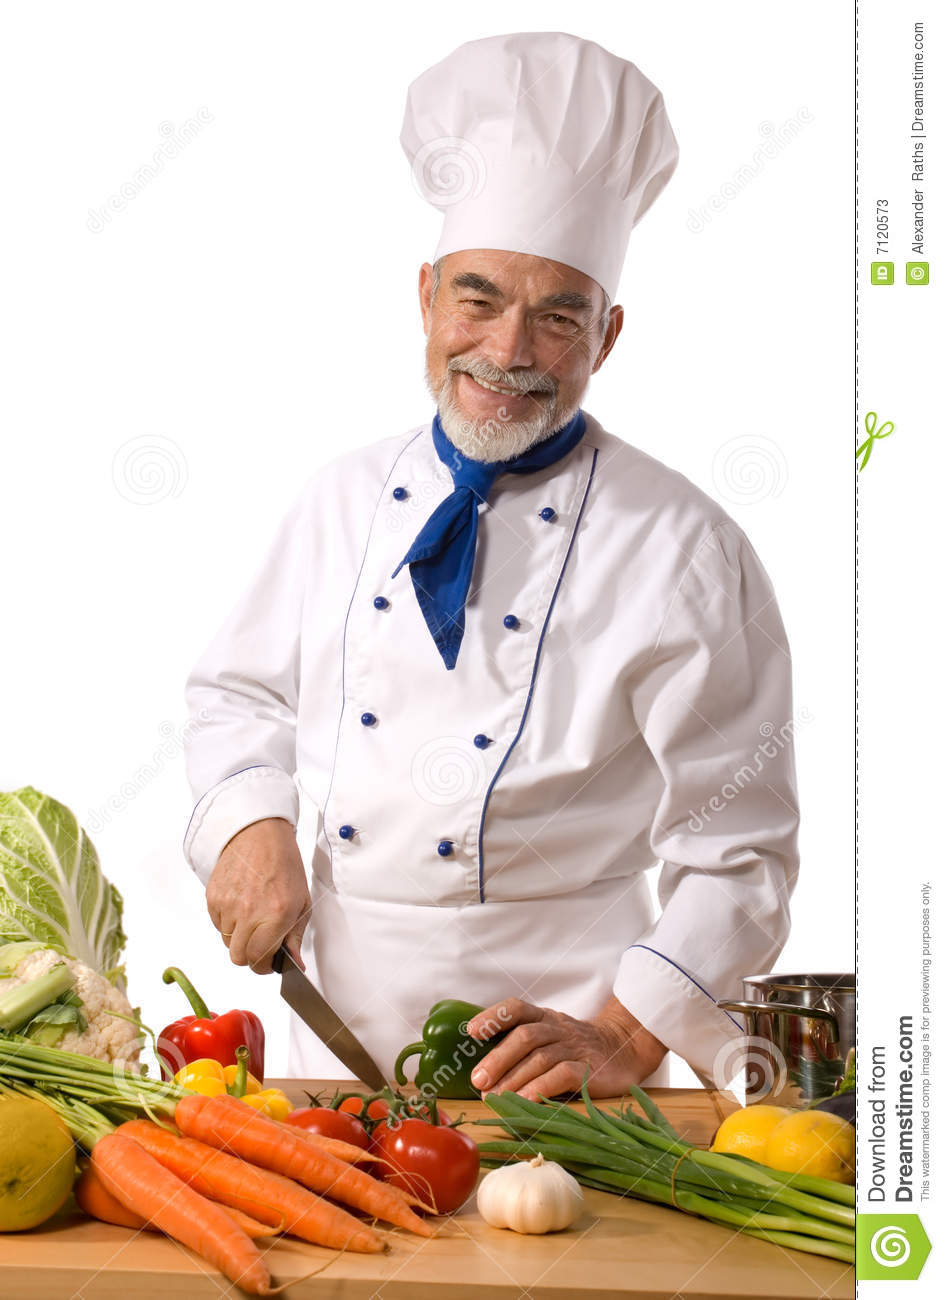 Chef cutting vegetables stock image. Image of plate ...